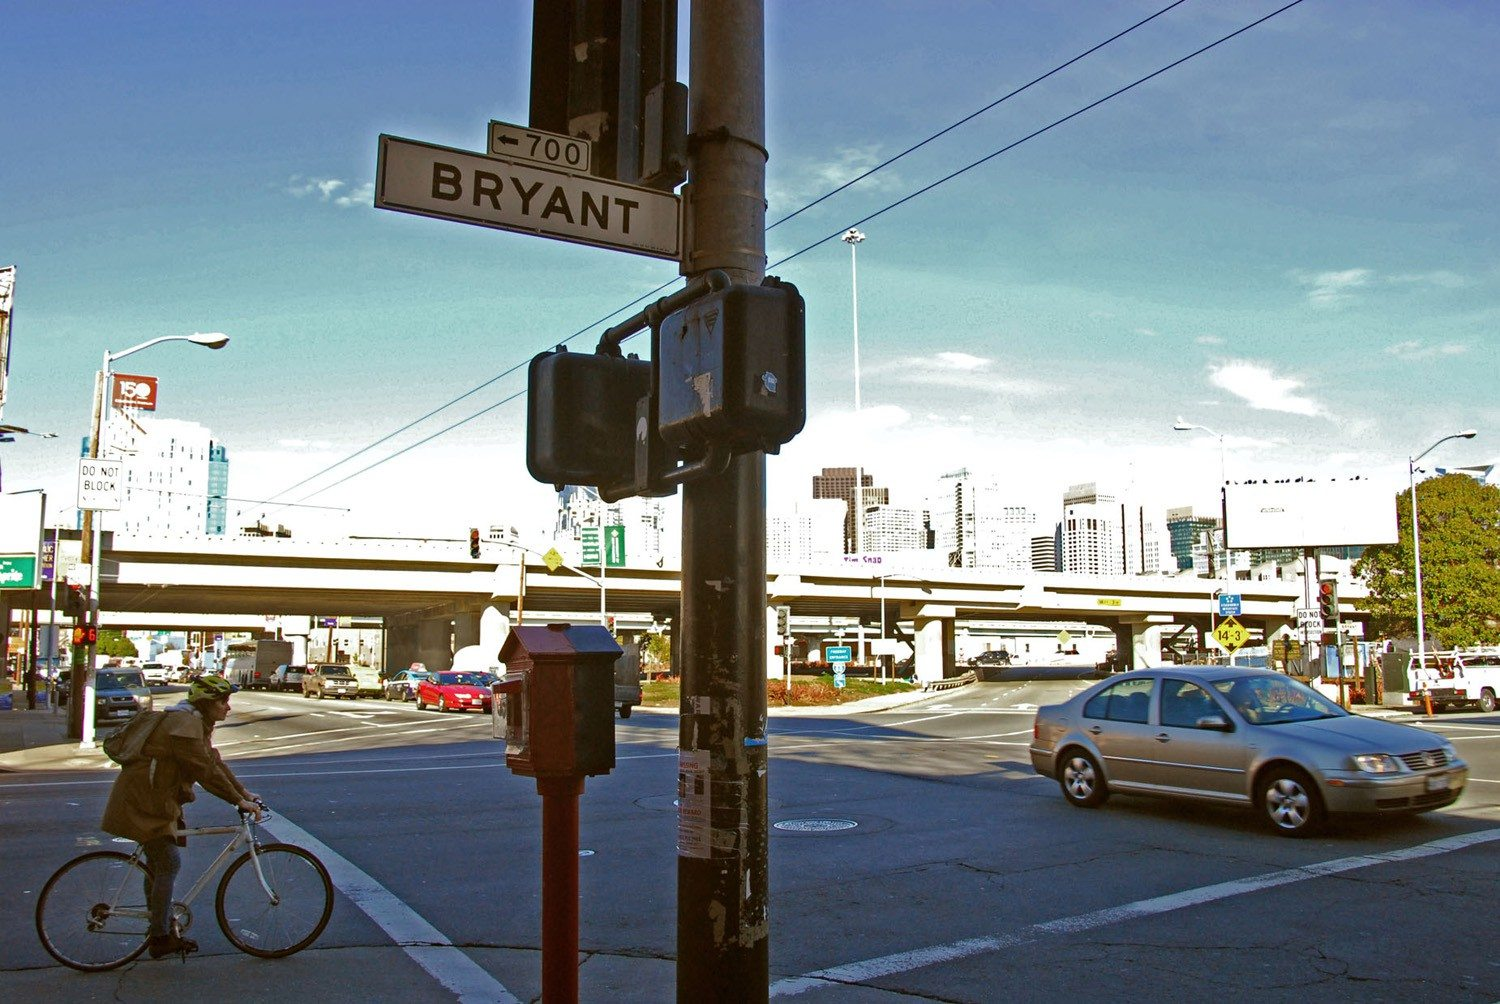 EVAN DUCHARME/SPECIAL TO THE  S.F. EXAMINERA cyclist was seriously injured at the intersection of Fifth and Bryant streets.